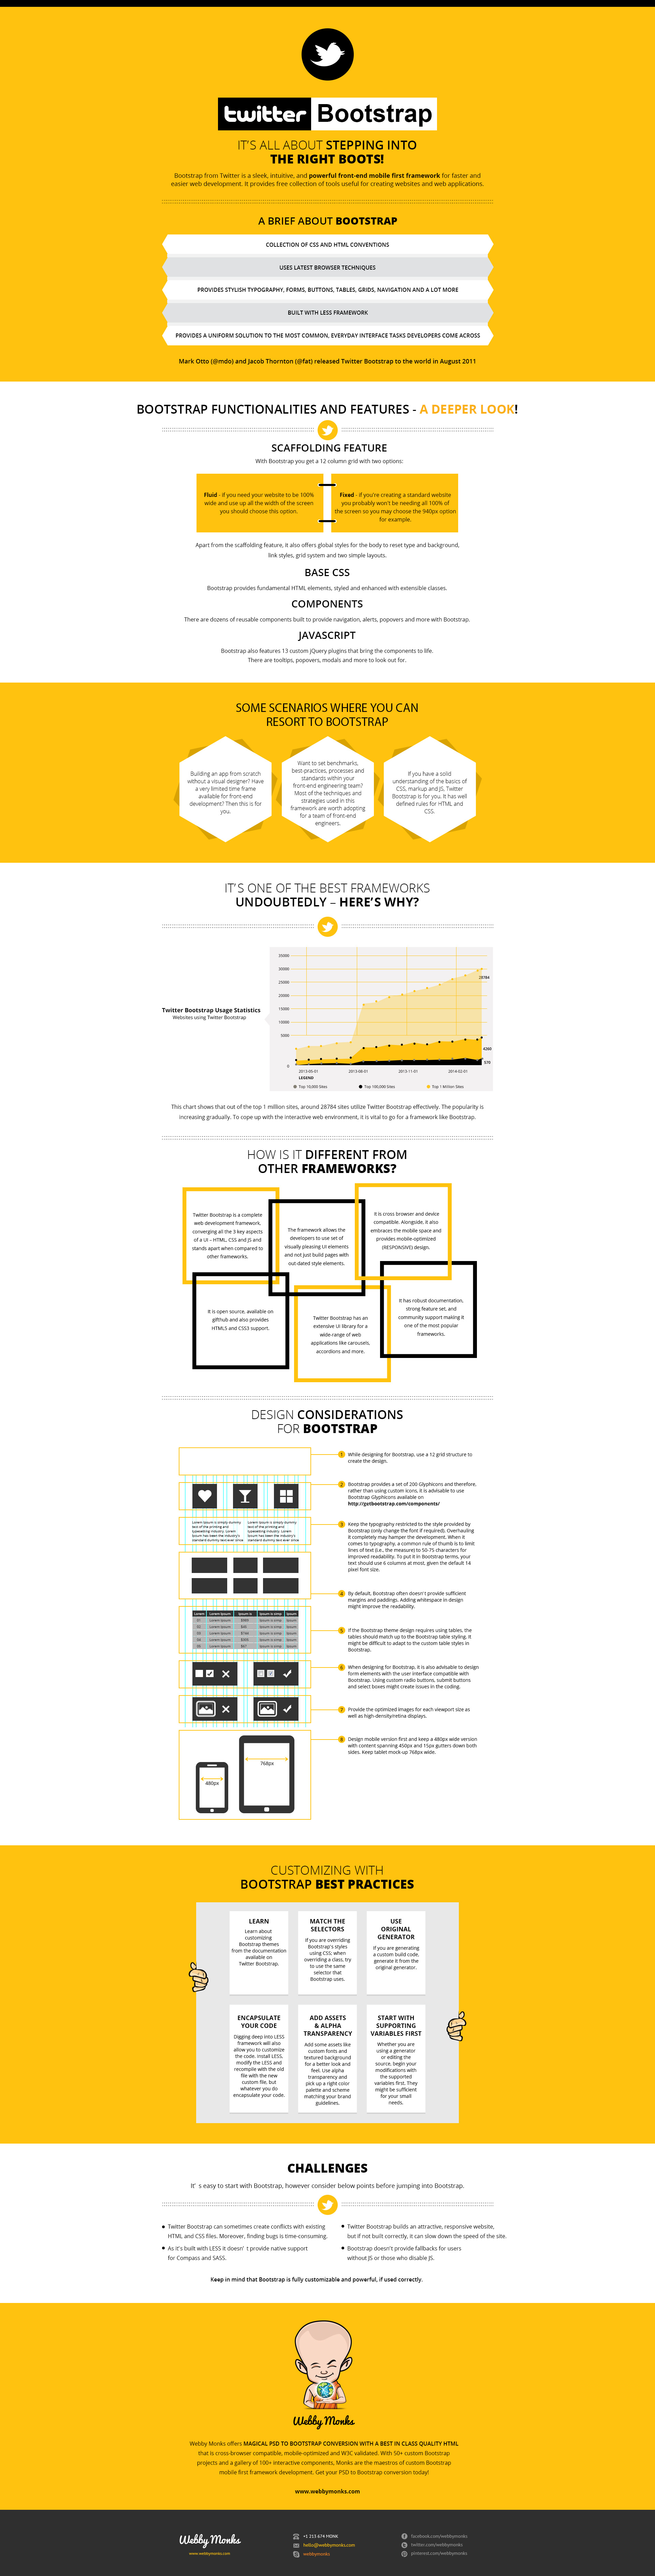 Twitter Bootstrap Infographic